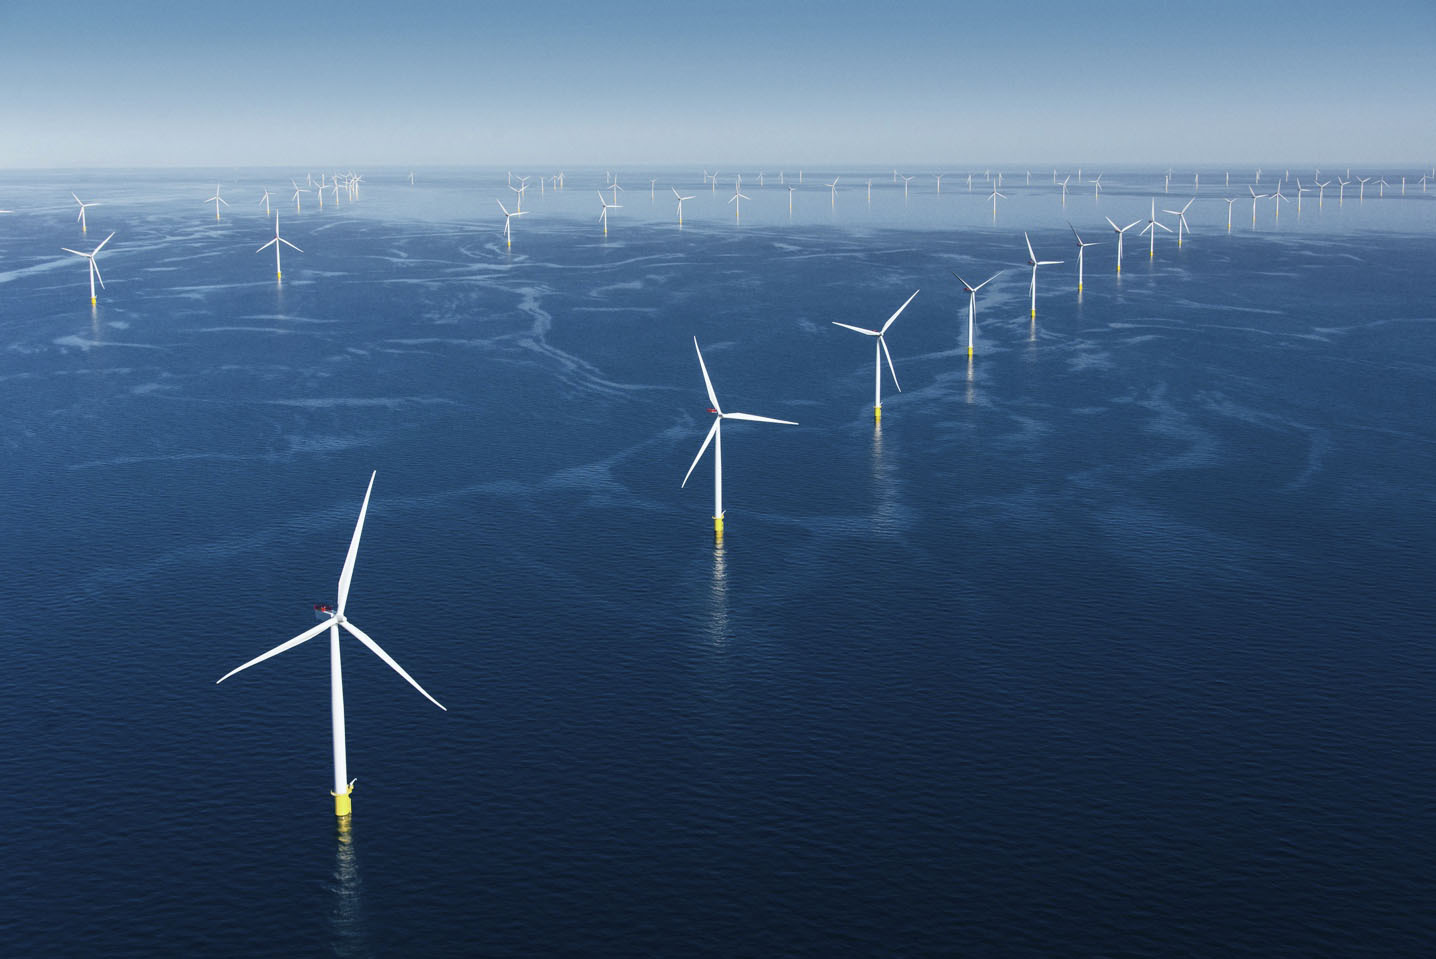 The Biden Administration has said the waters off New York and New Jersey should be home to vast arrays of new offshore wind turbines, which it sees as both an economic and environmental boost to the U.S.